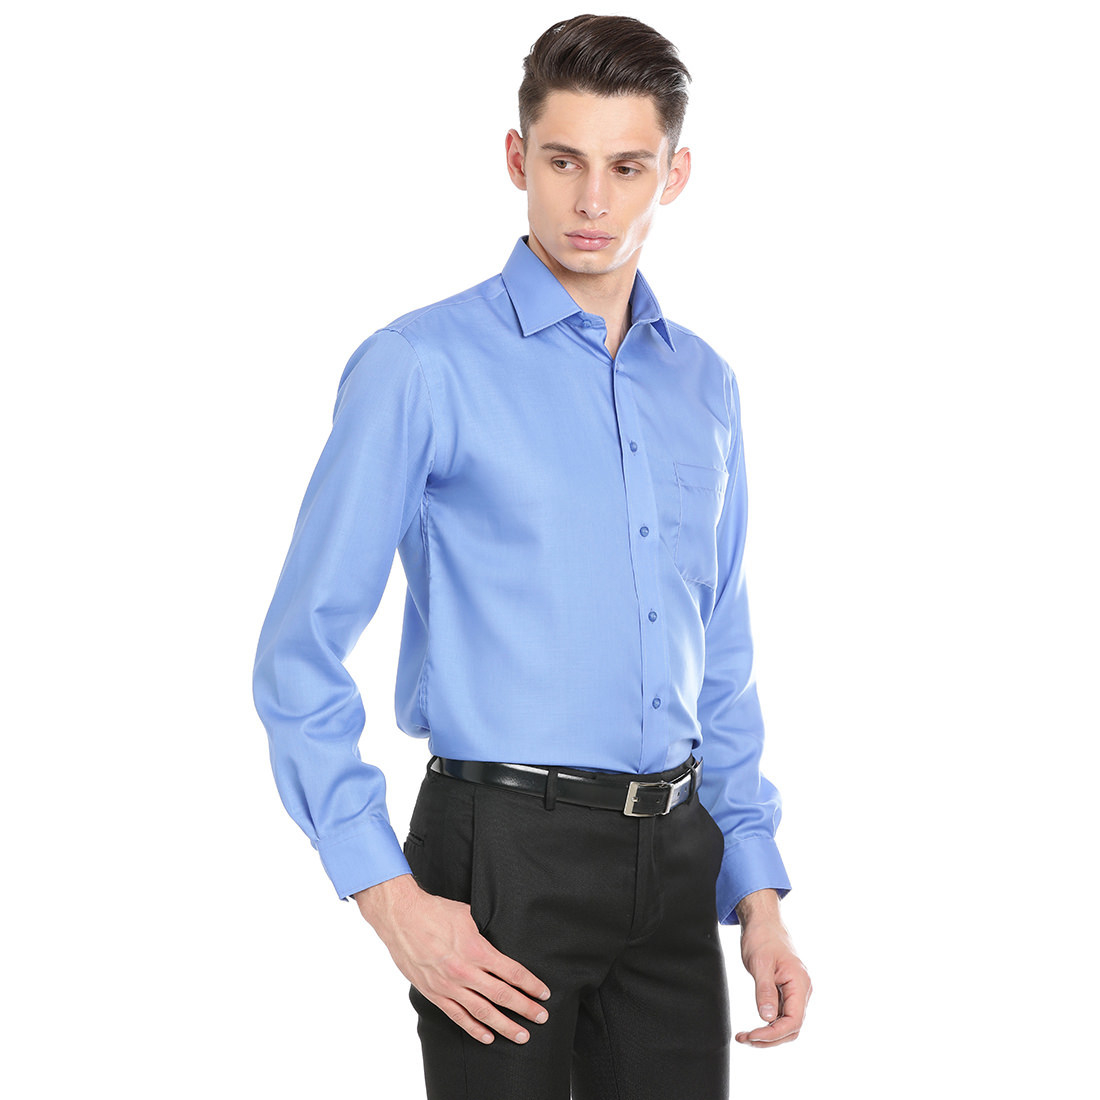 Paradigm Dark Blue Color Formal Pure Cotton Non-Iron Shirt